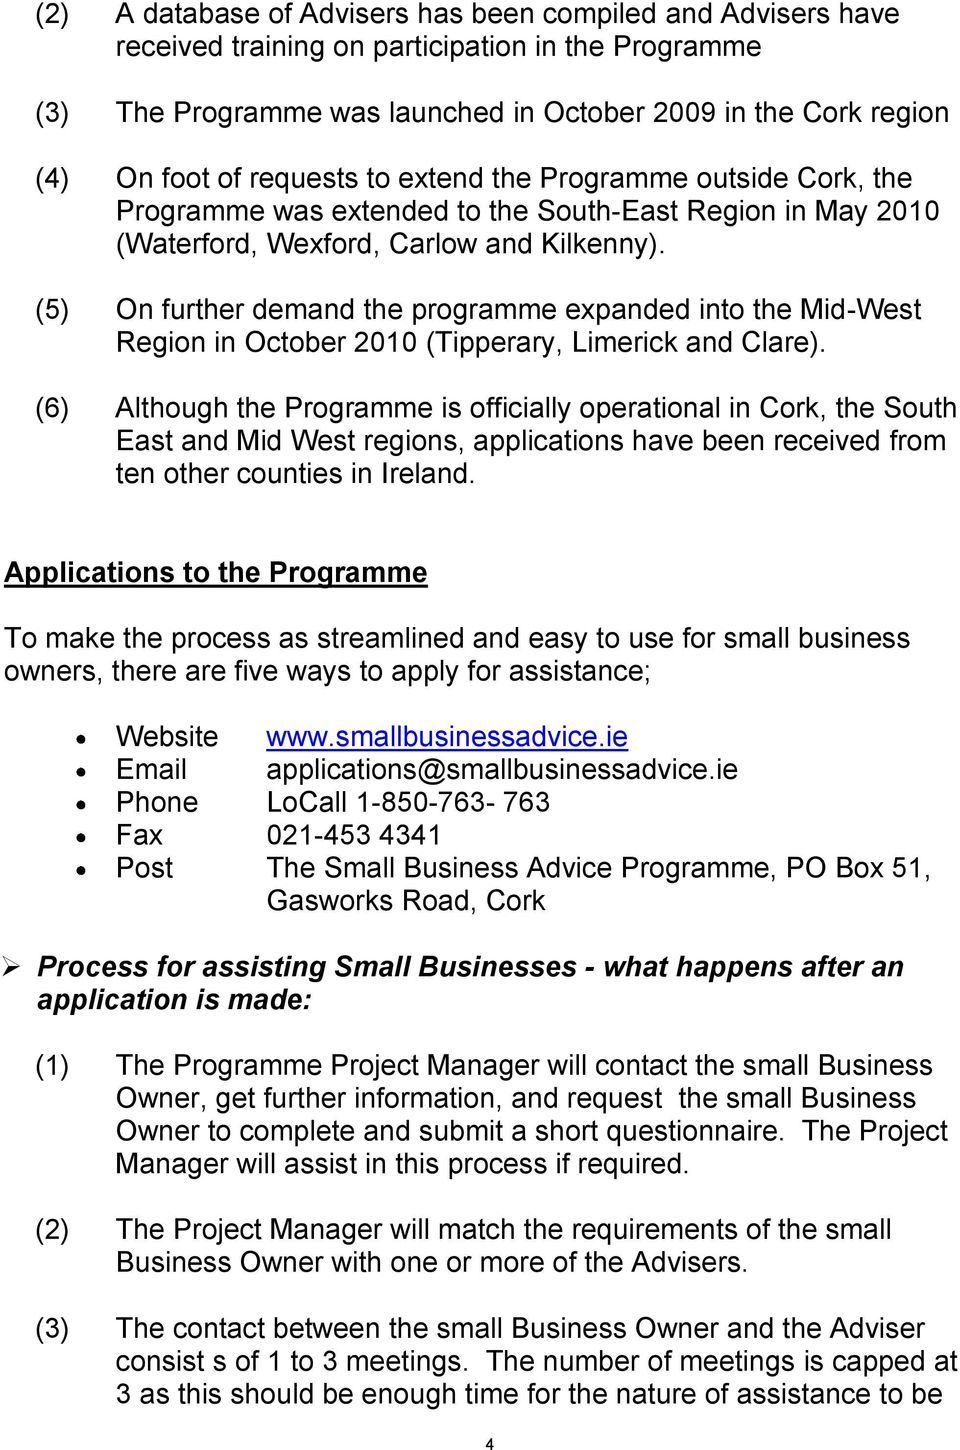 (5) On further demand the programme expanded into the Mid-West Region in October 2010 (Tipperary, Limerick and Clare).